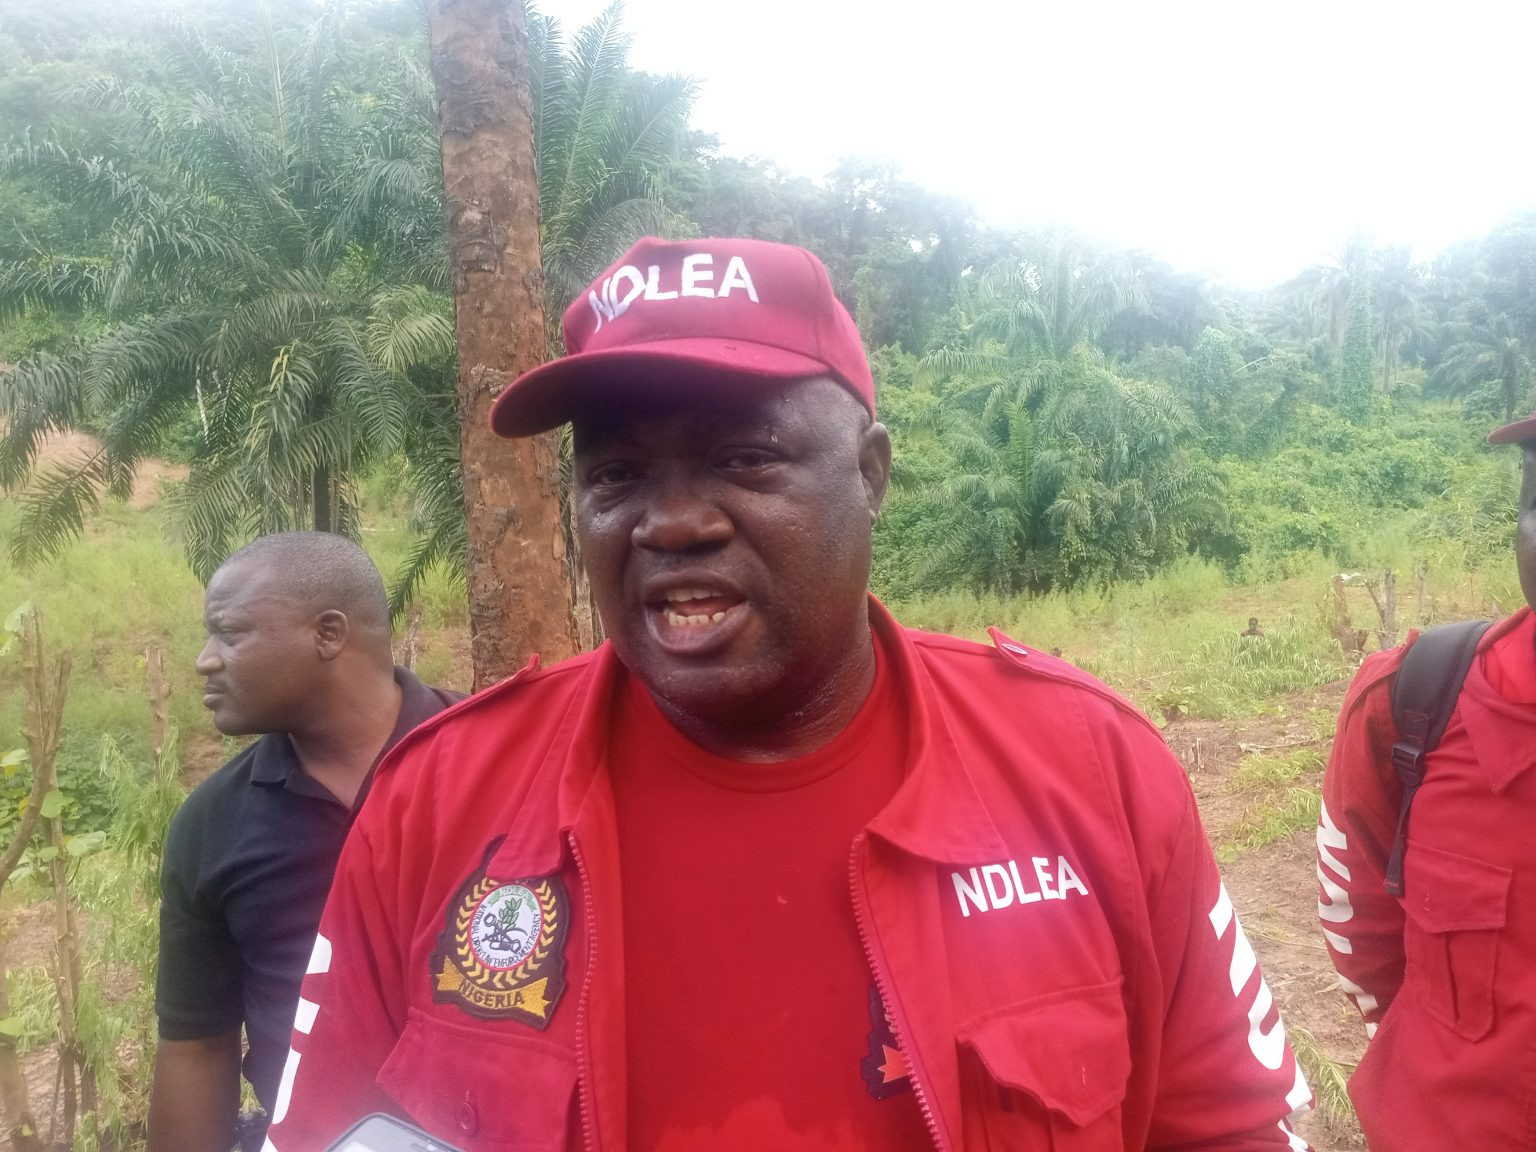 Suspects arrested as NDLEA destroys cannabis plantation worth over N1.5bn in Kogi